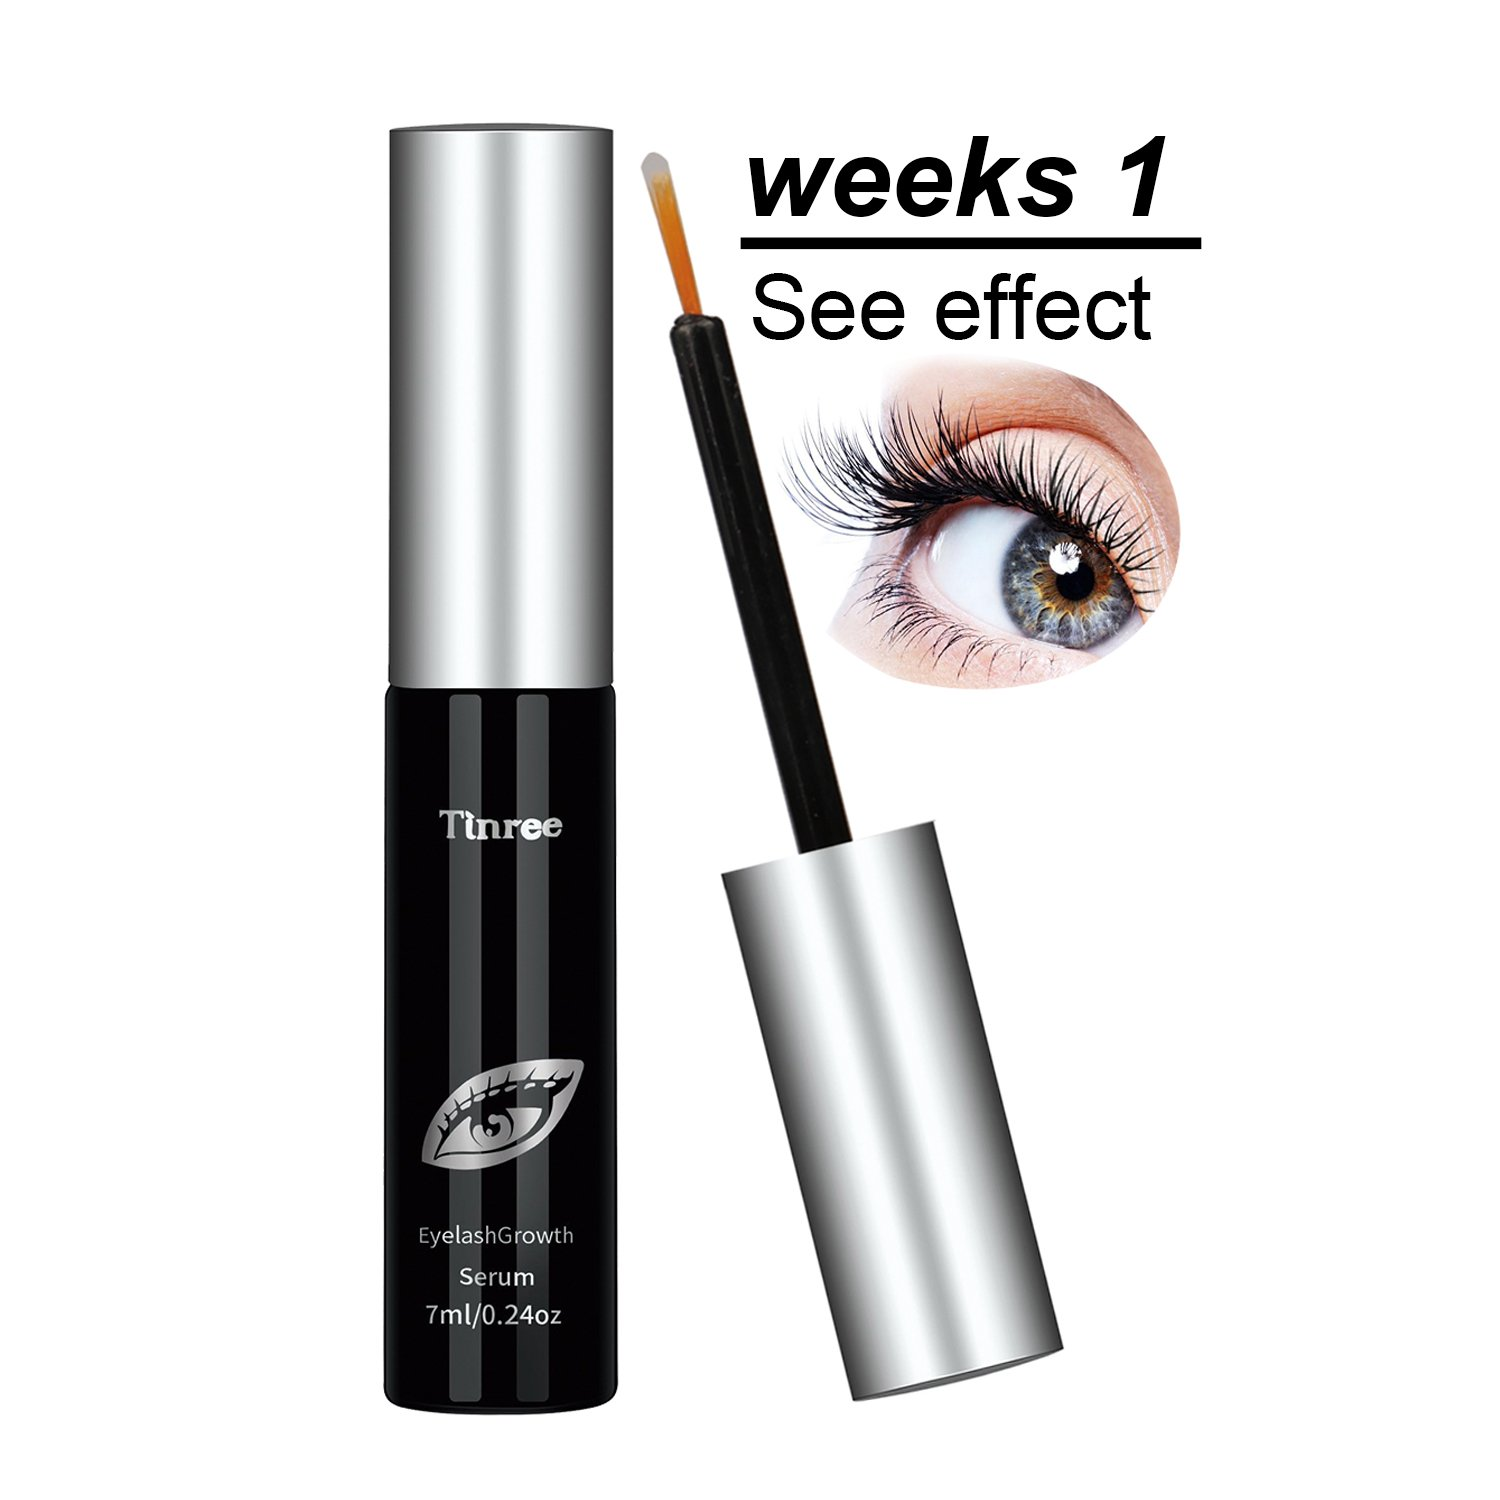 Tinree Eyelash Growth Serum Luscious Lashes and Eyebrows - Natural Ingredients Reveal Your Beauty(0.24 fl.oz)